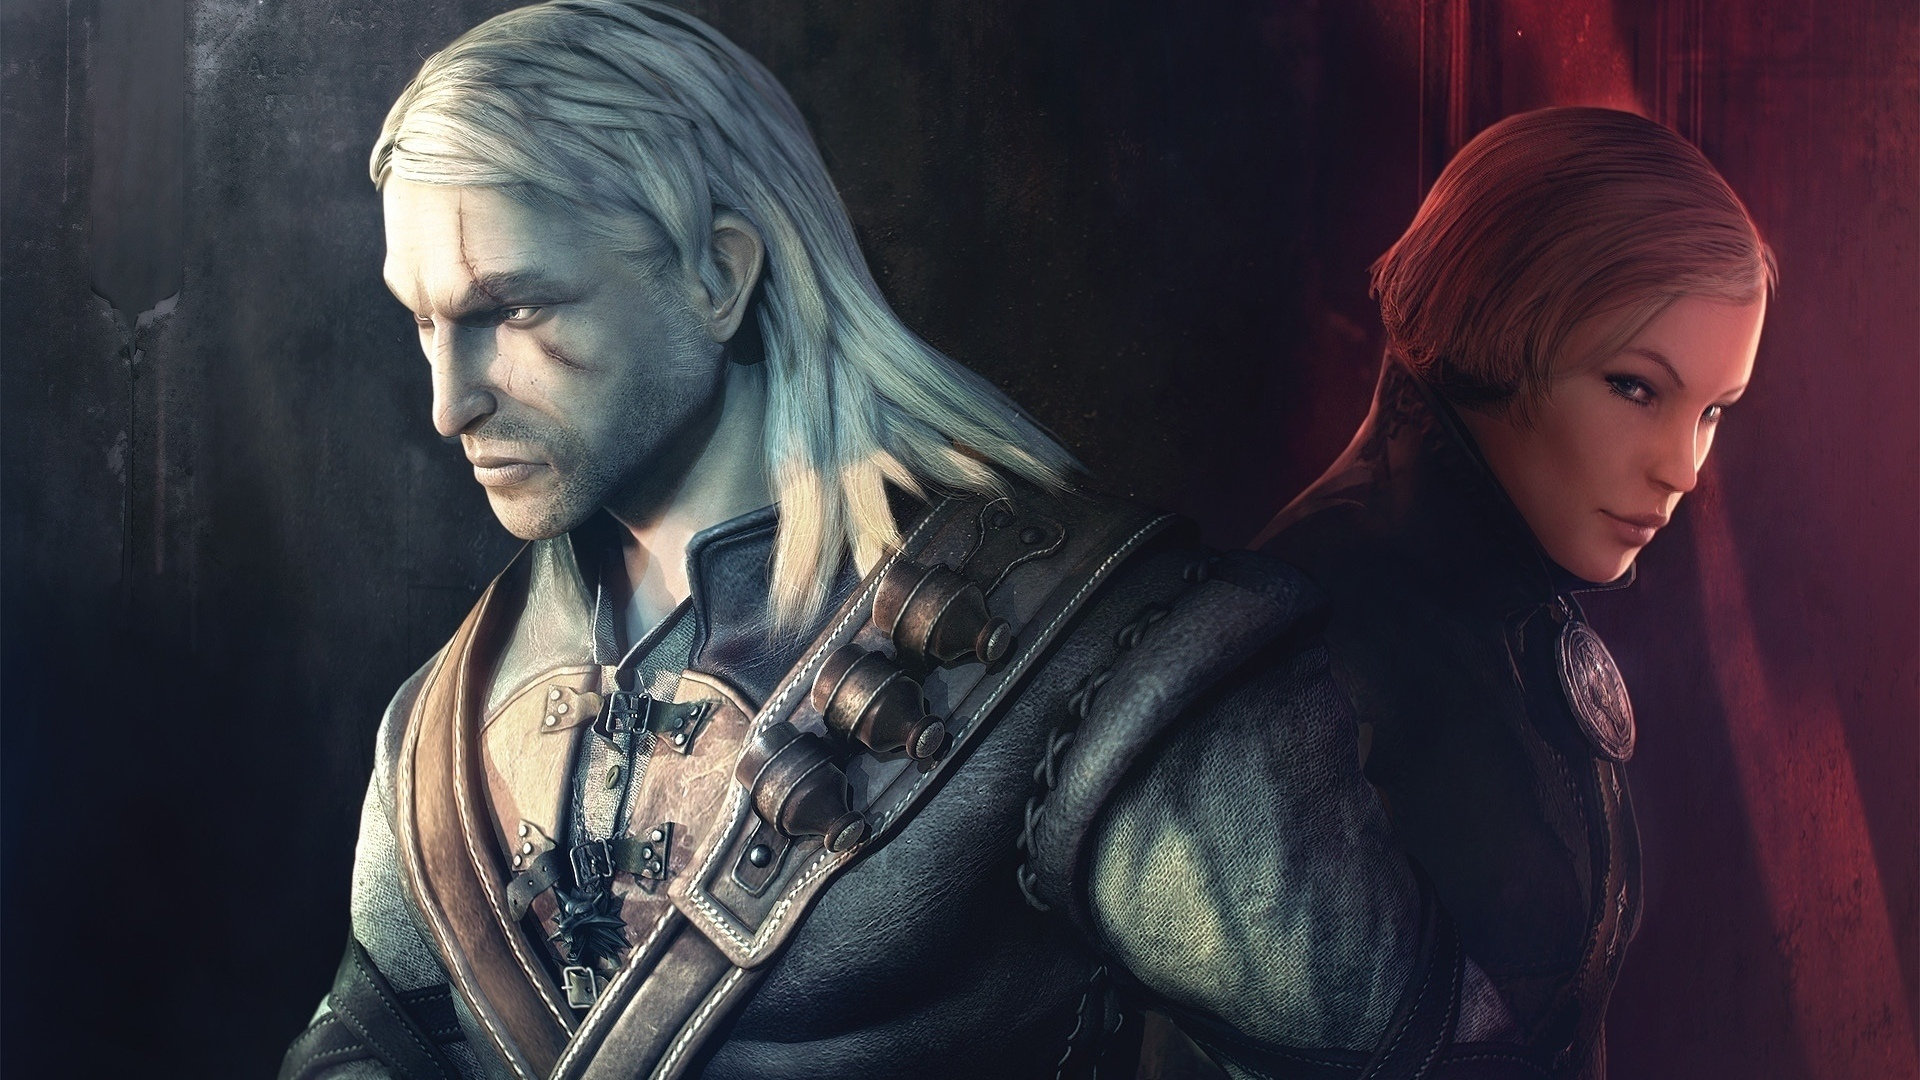 геральт, enhanced edition, the witcher, ведьмак